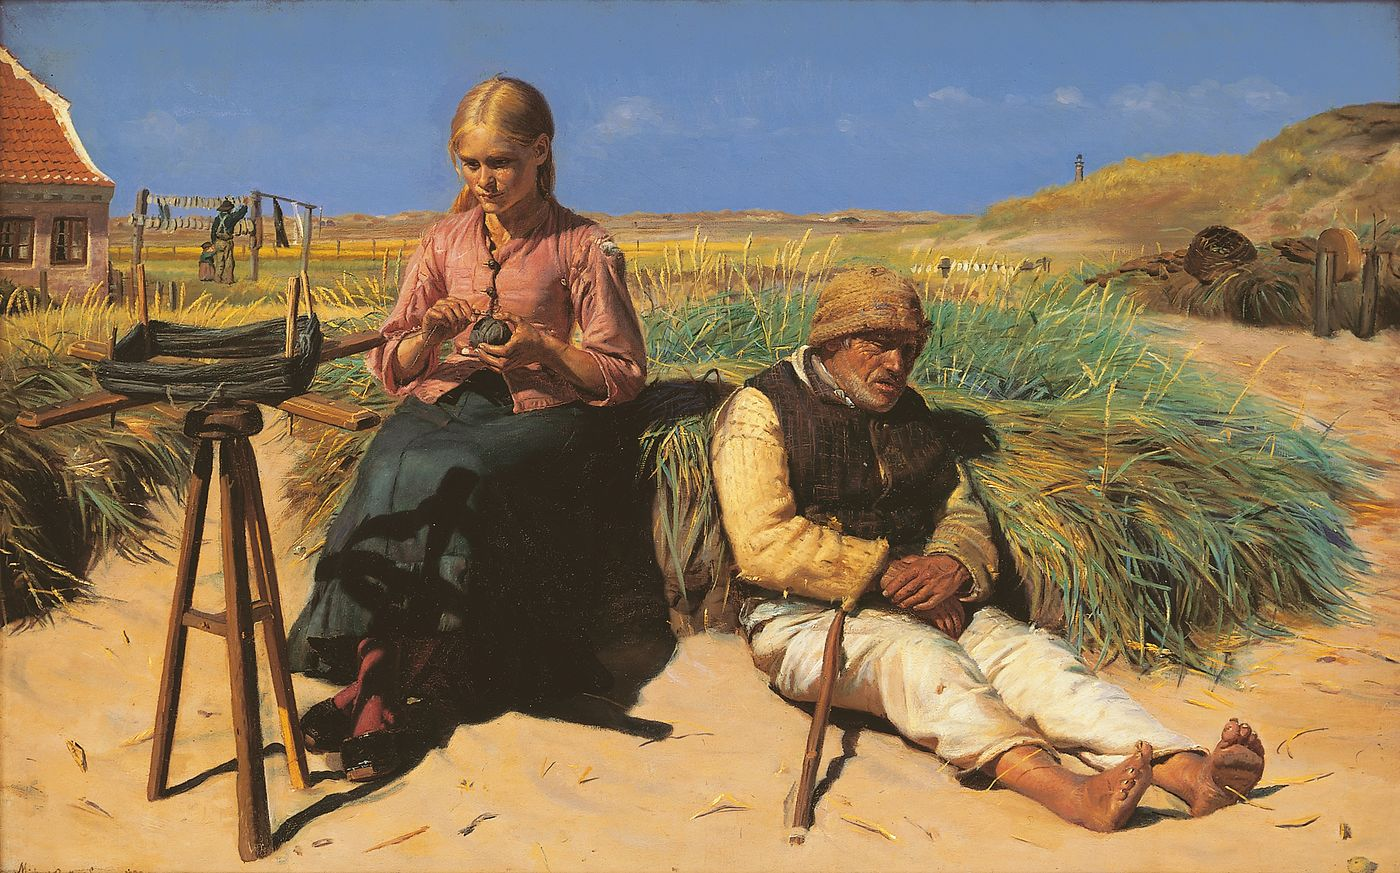 Figures in a landscape. Blind Kristian and Tine among the dunes.